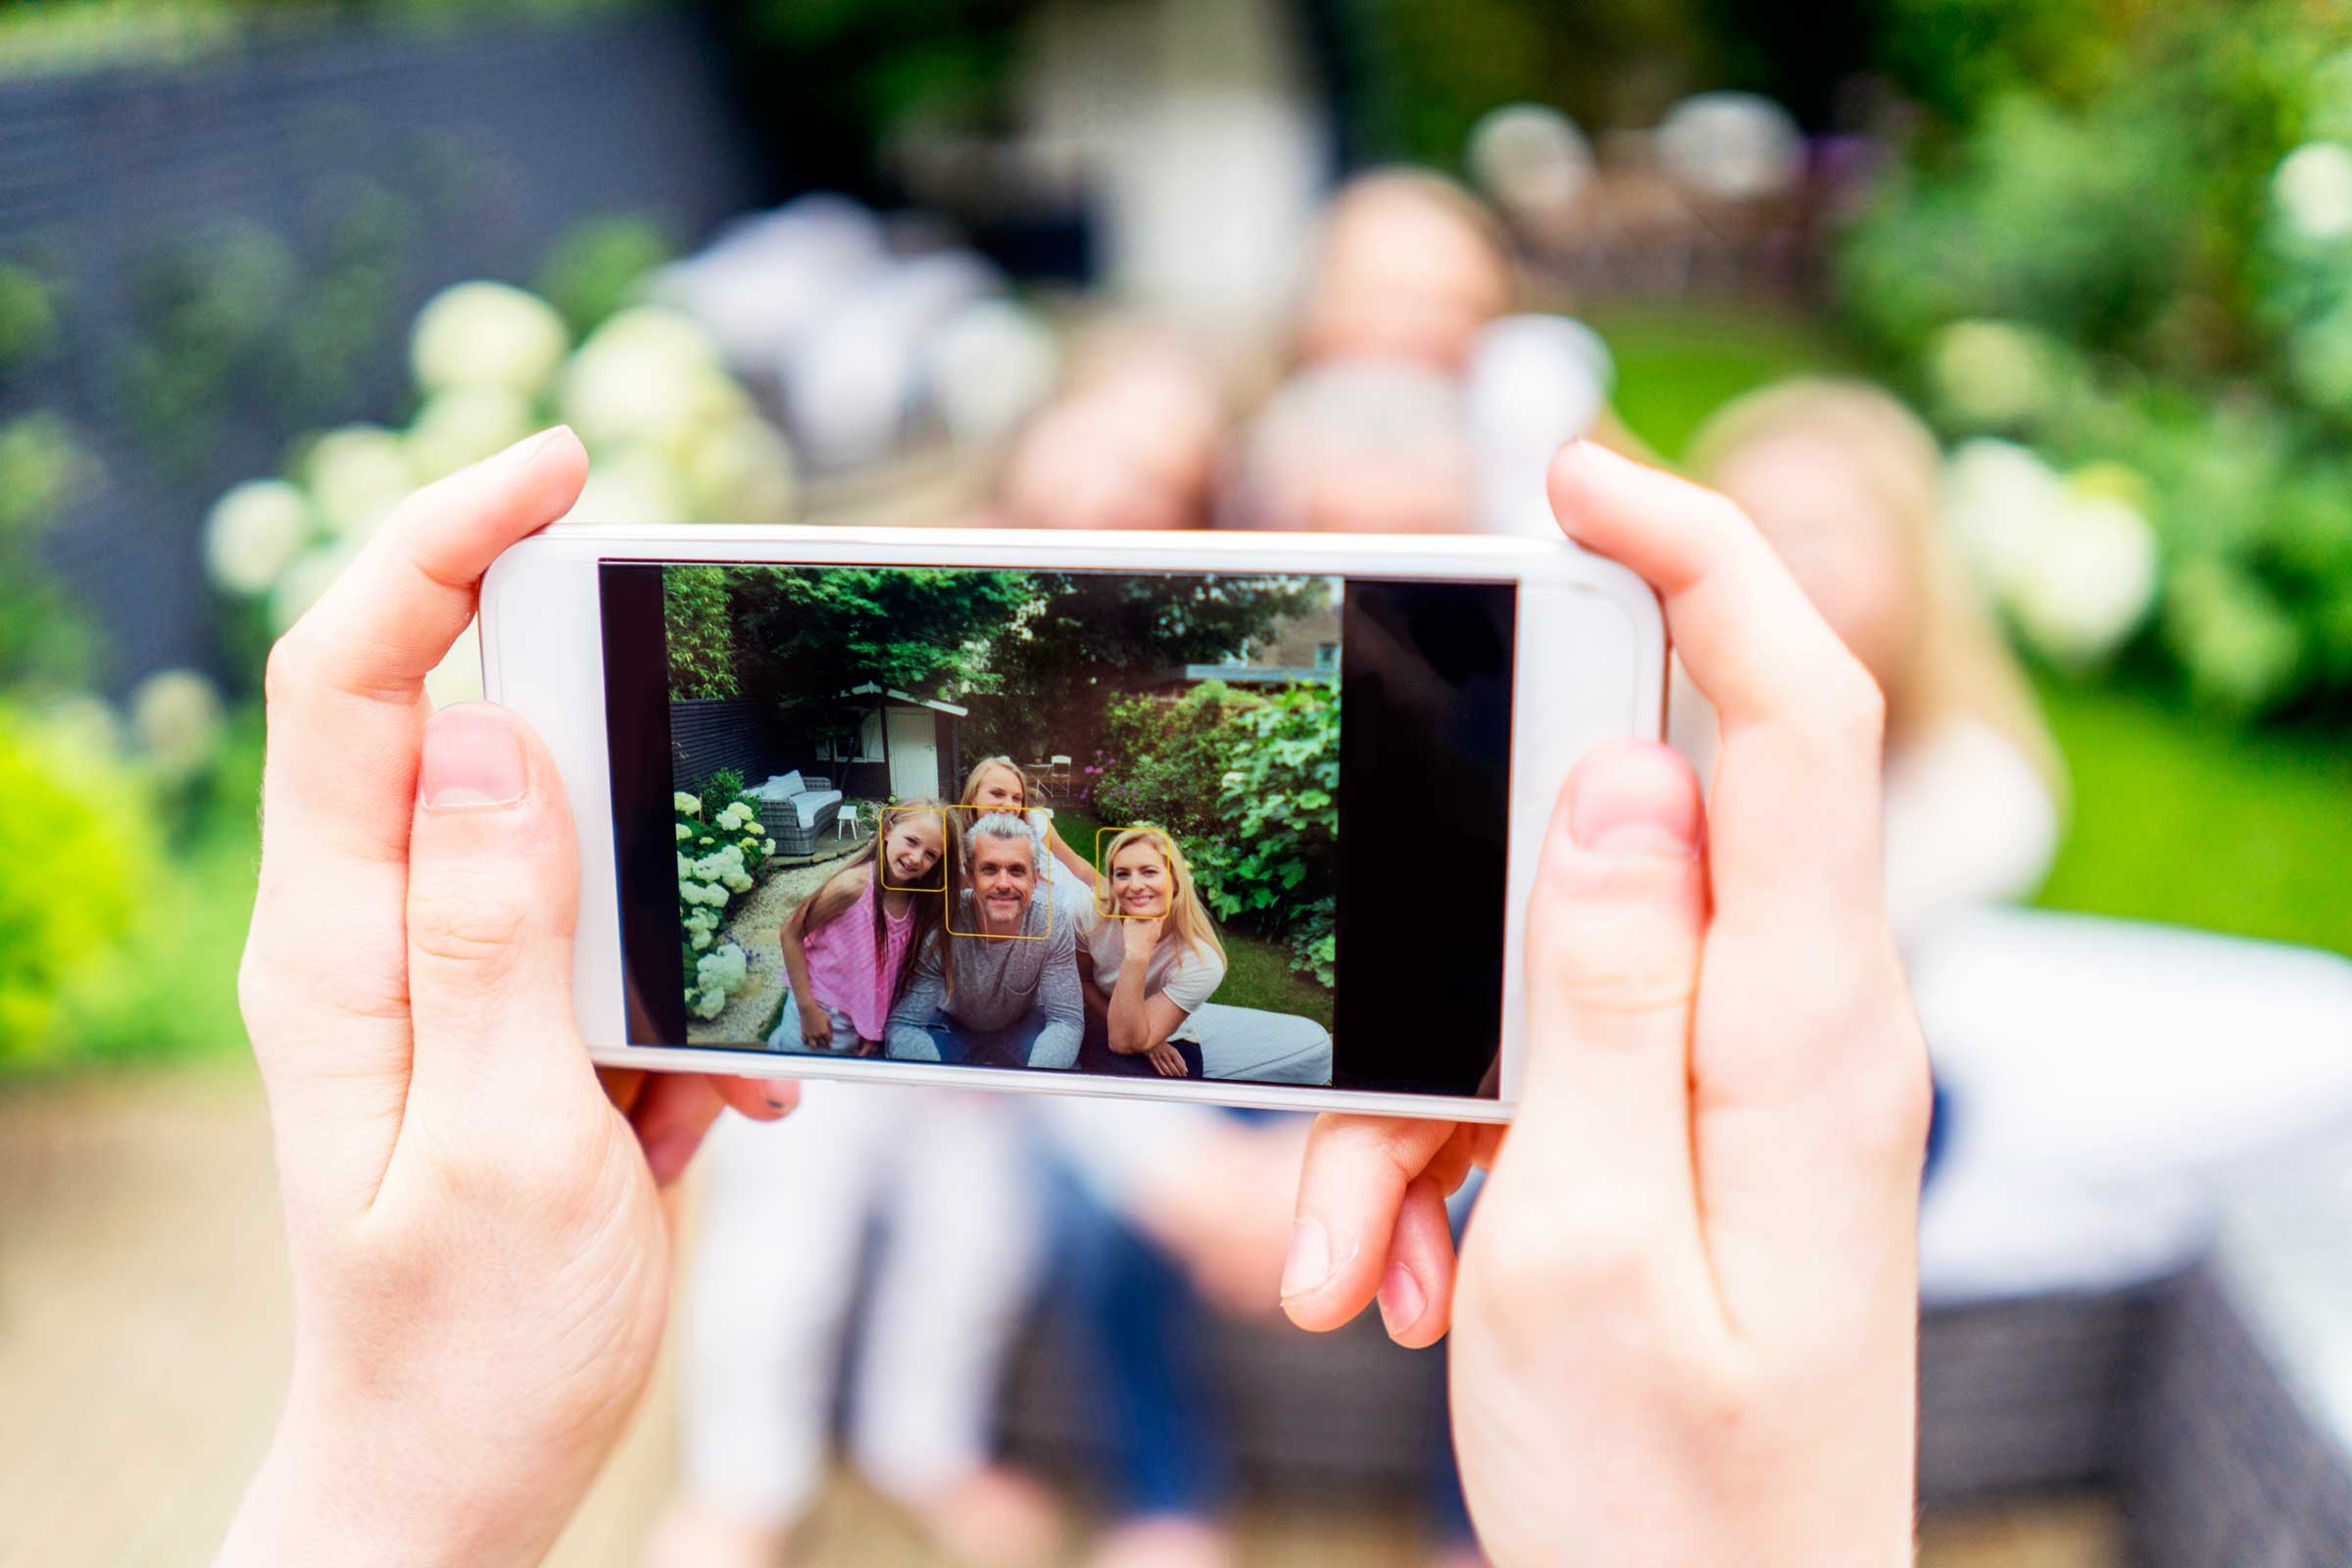 Reader's Digest:  7 Things To Never Share About Your Children On Social Media    What's so risky about posting smiling, finger-painting photos of your kids on social media? Surprisingly, a lot. Here's what not to post to keep your kids safe.